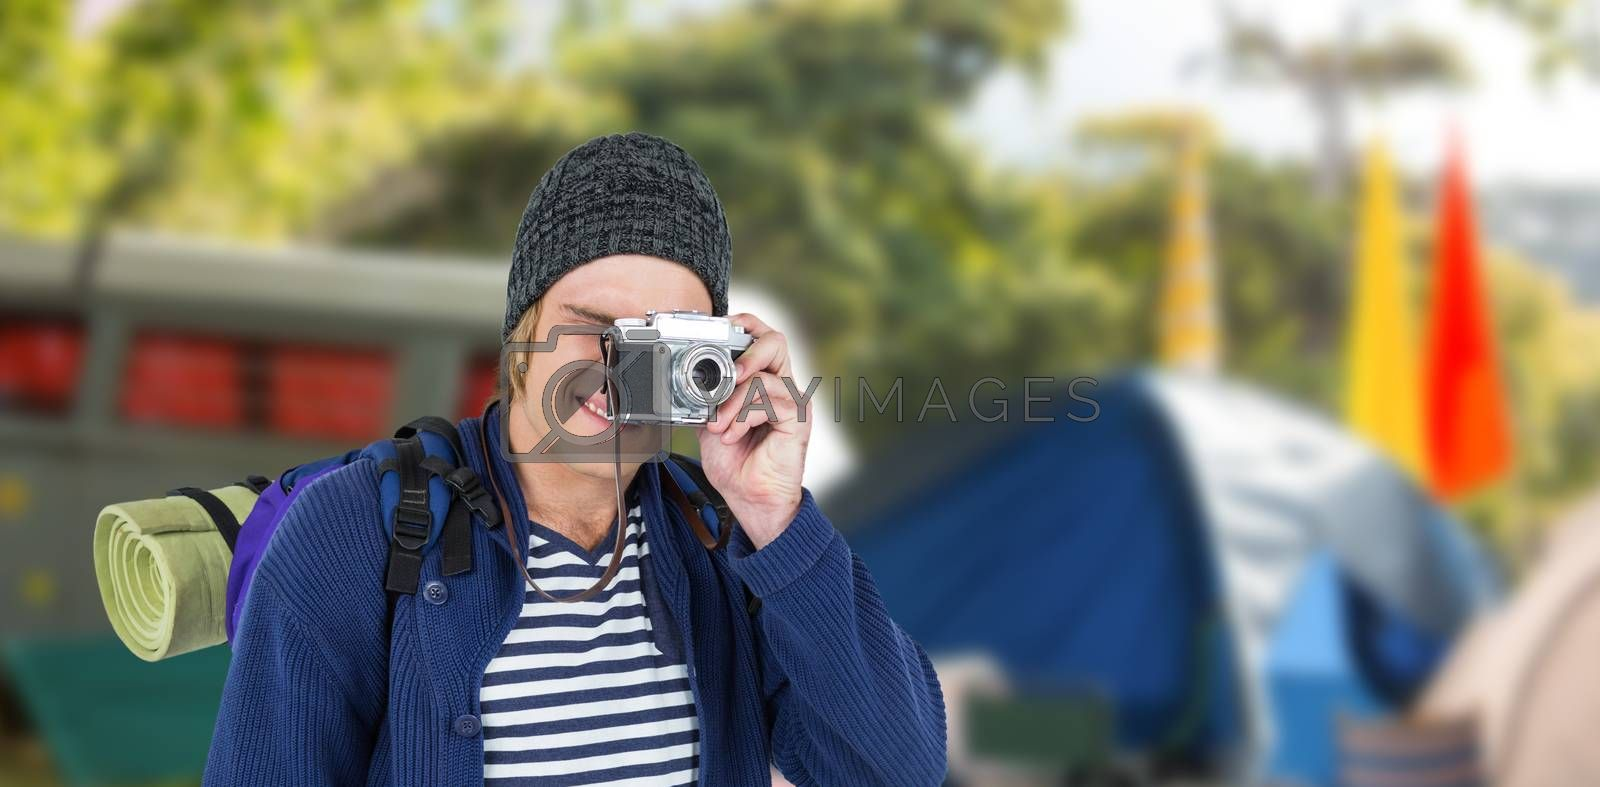 Backpacker hipster taking pictures with a retro camera against empty campsite at music festival